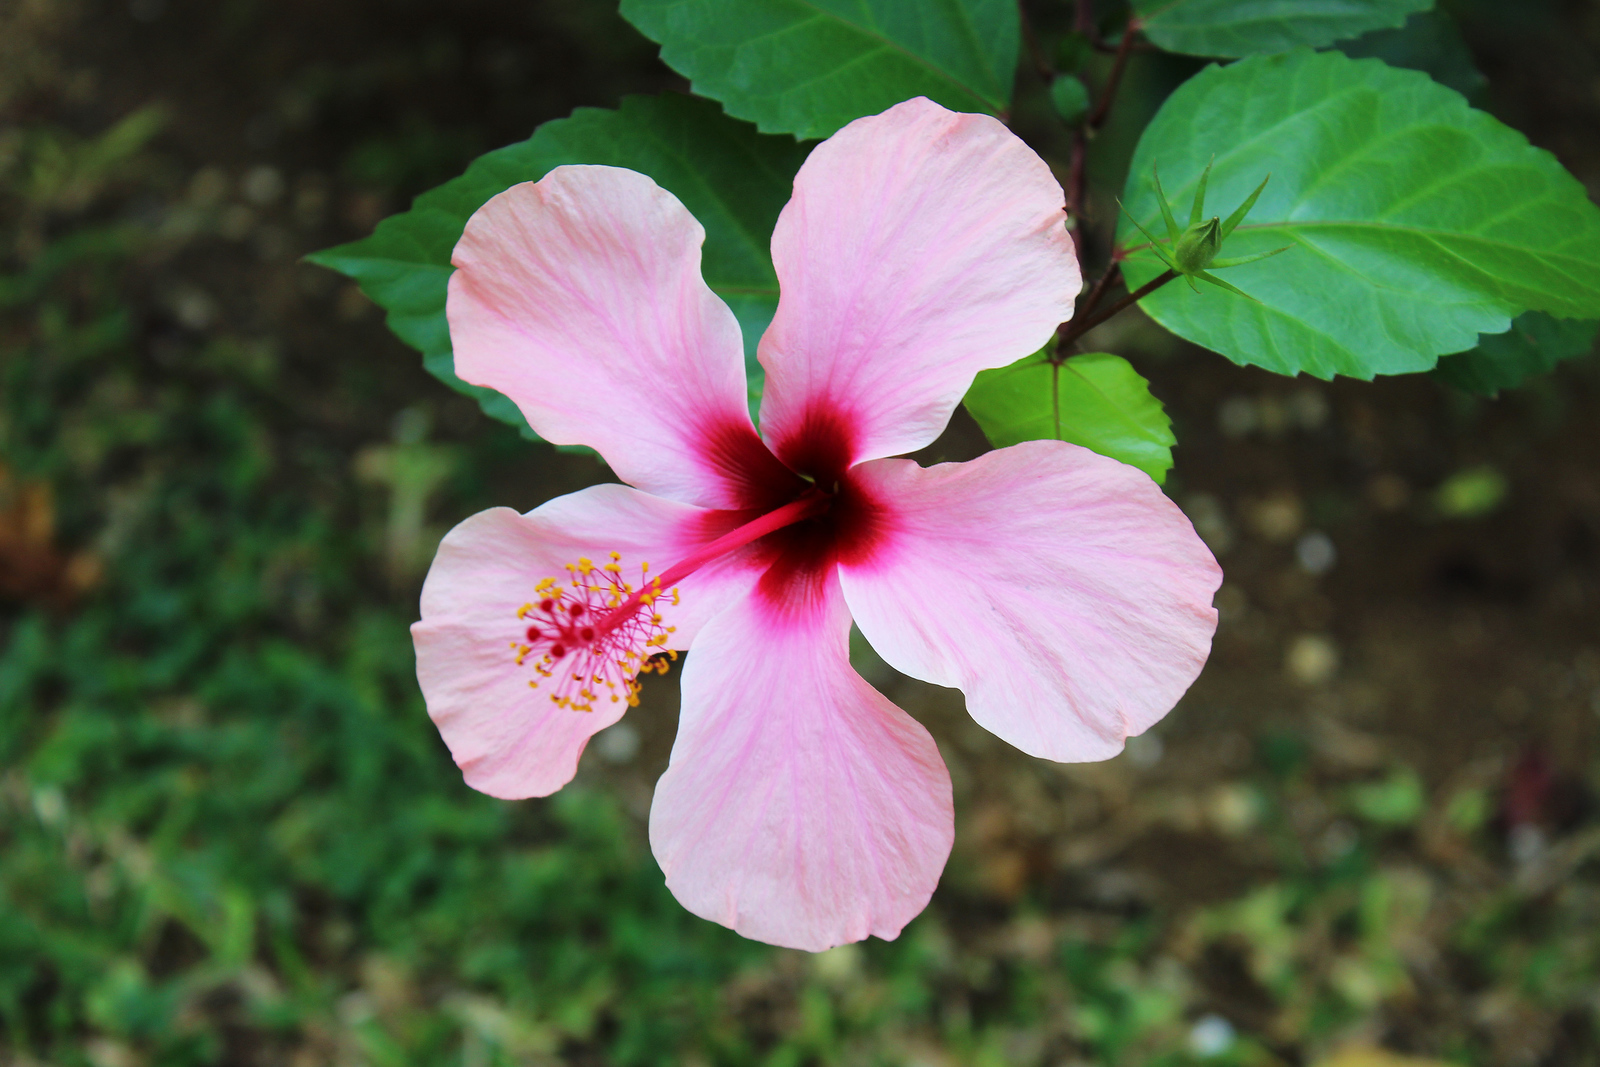 Hotel Riu Palace Negril Jamaica - Hibiscus flowers in the garden